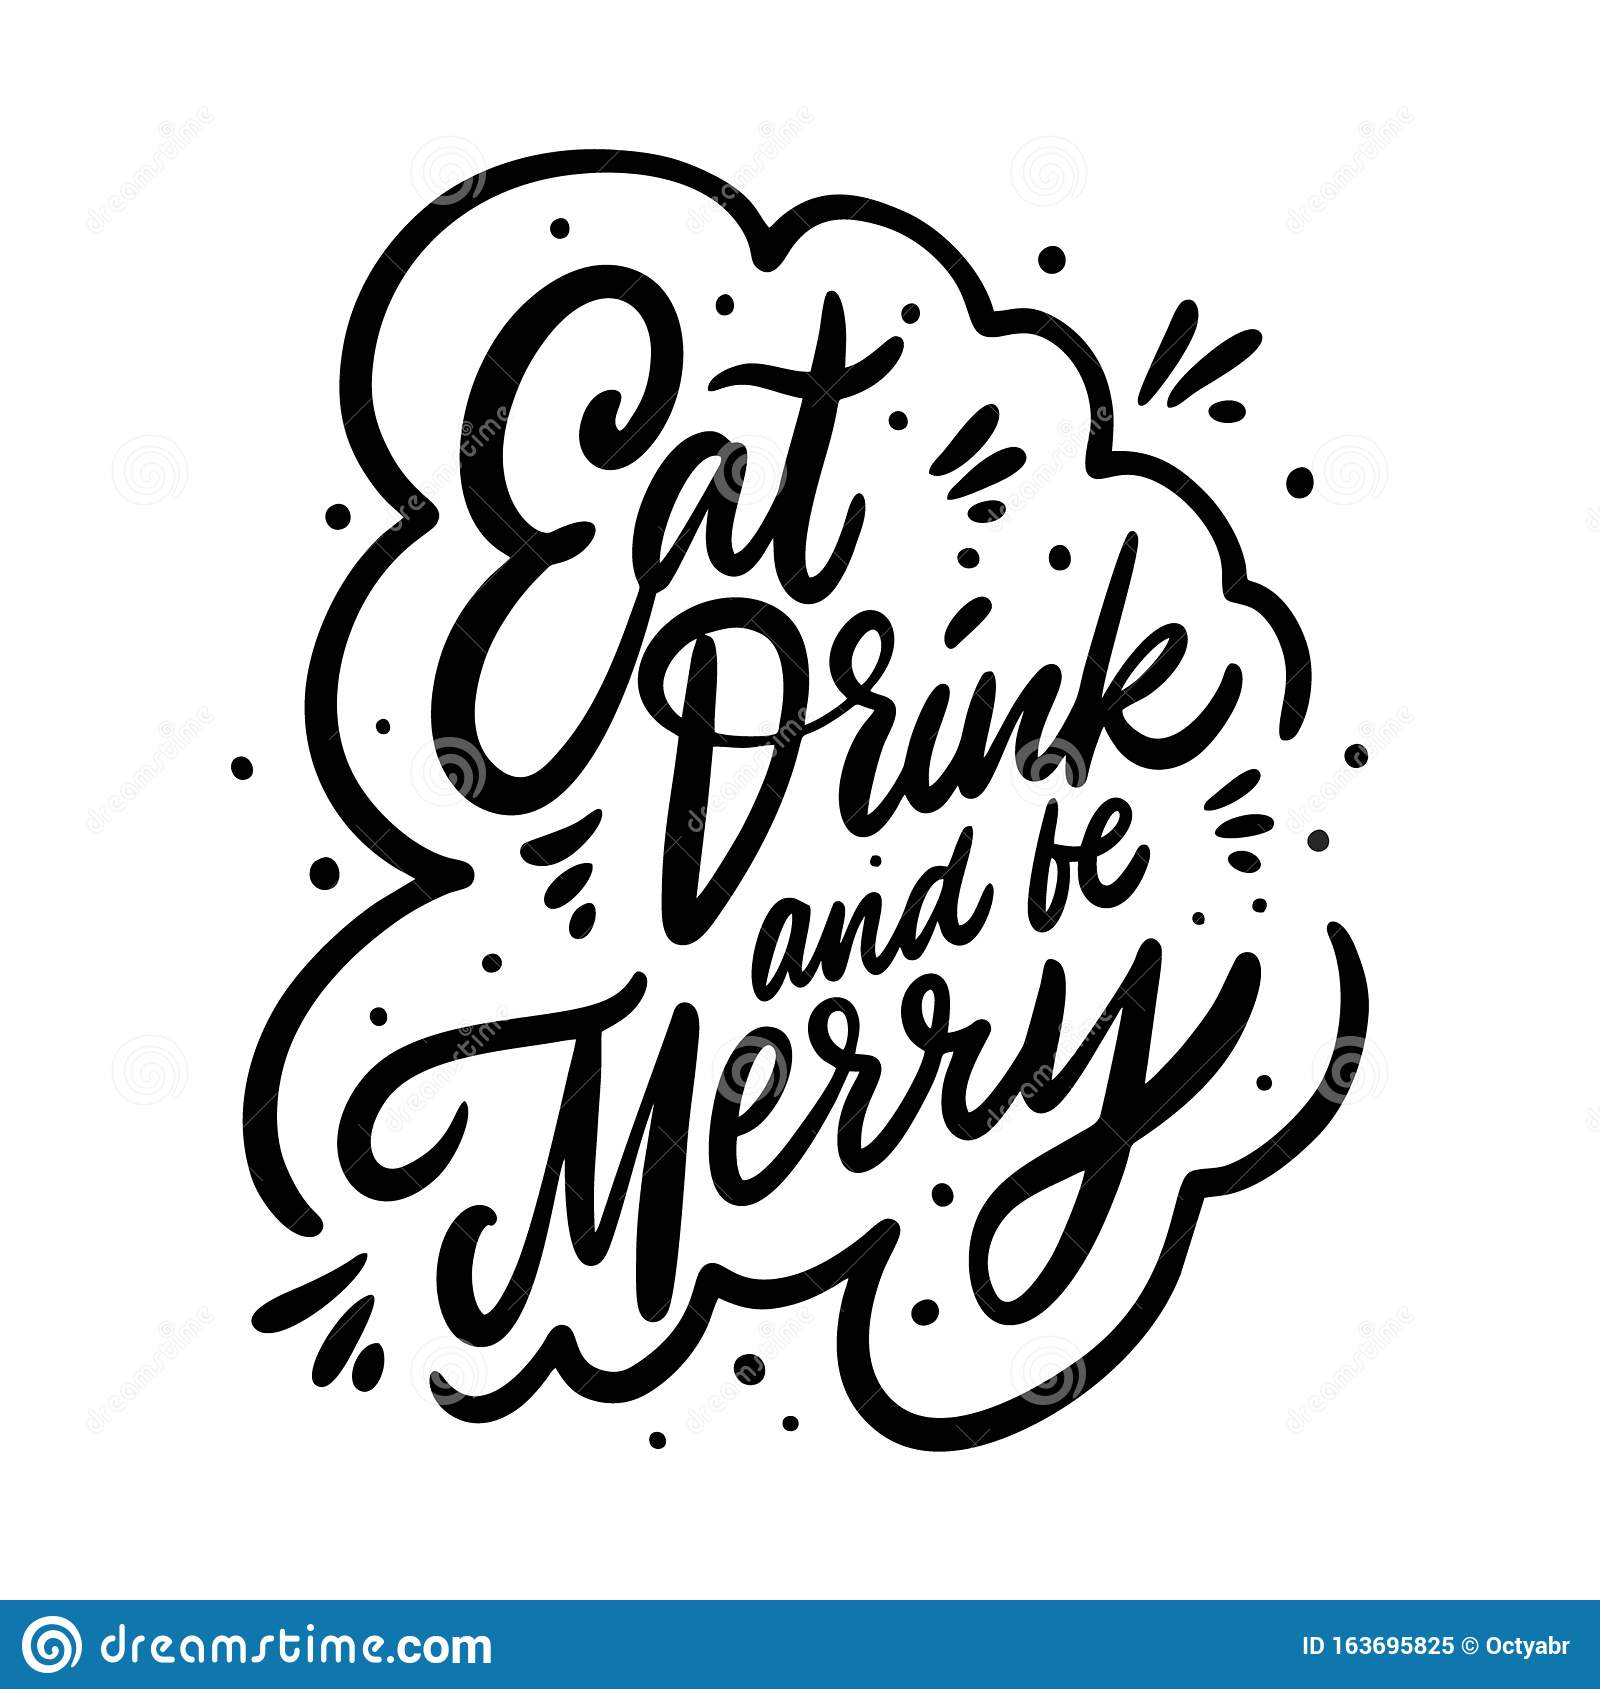 Eat Drink And Be Merry Christmas Holiday Phrase Hand Drawn Vector Lettering Black Ink Isolated On White Background Stock Illustration Illustration Of Ornament Married 163695825